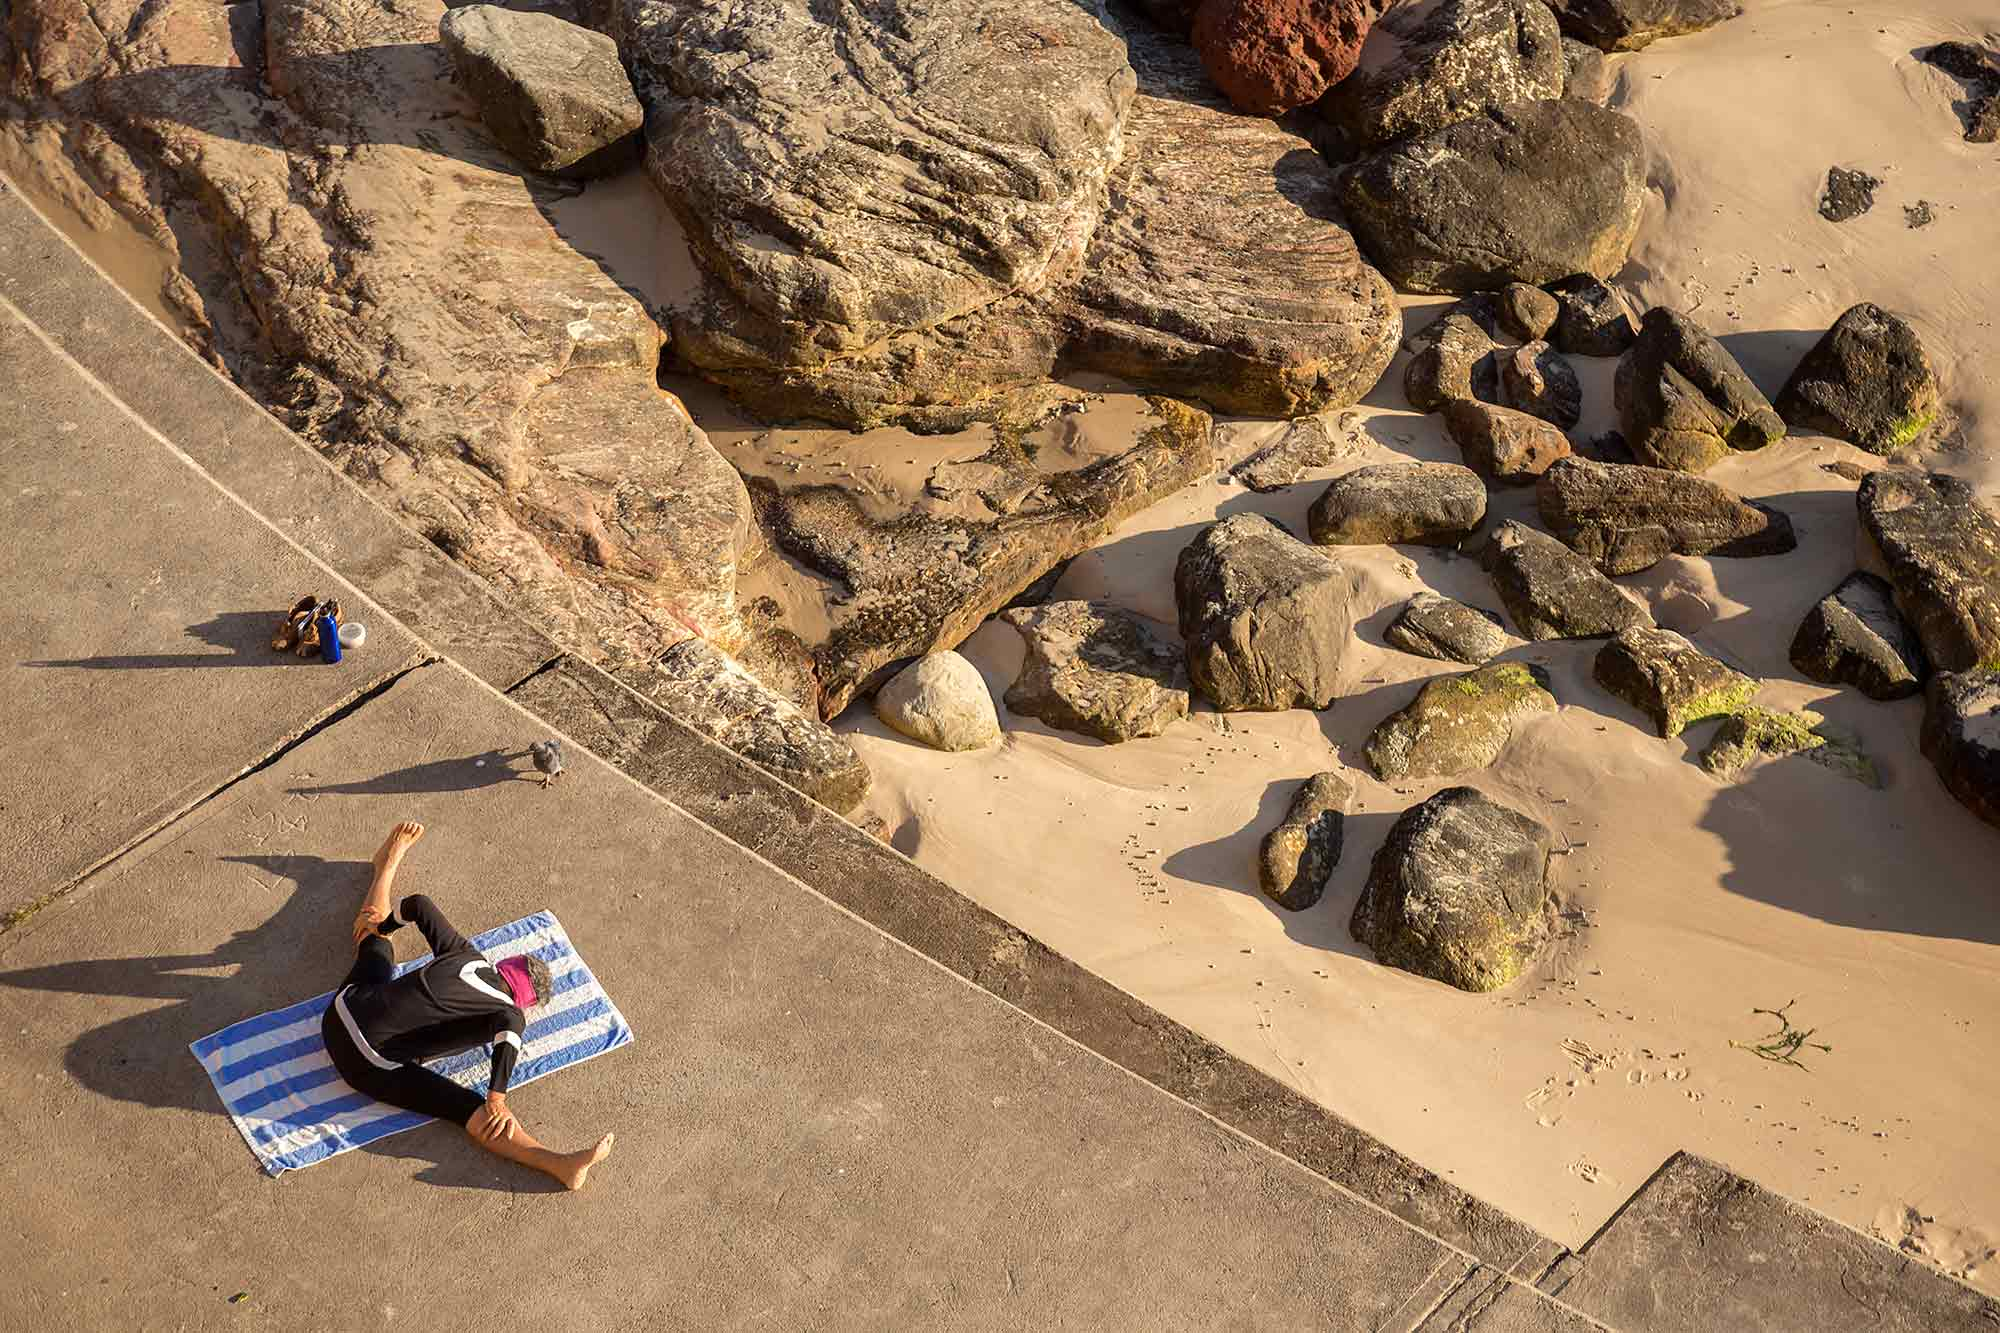 Sydney Coastal Walk: Doing some Yoga at Bronte Beach. © Ulli Maier & Nisa Maier